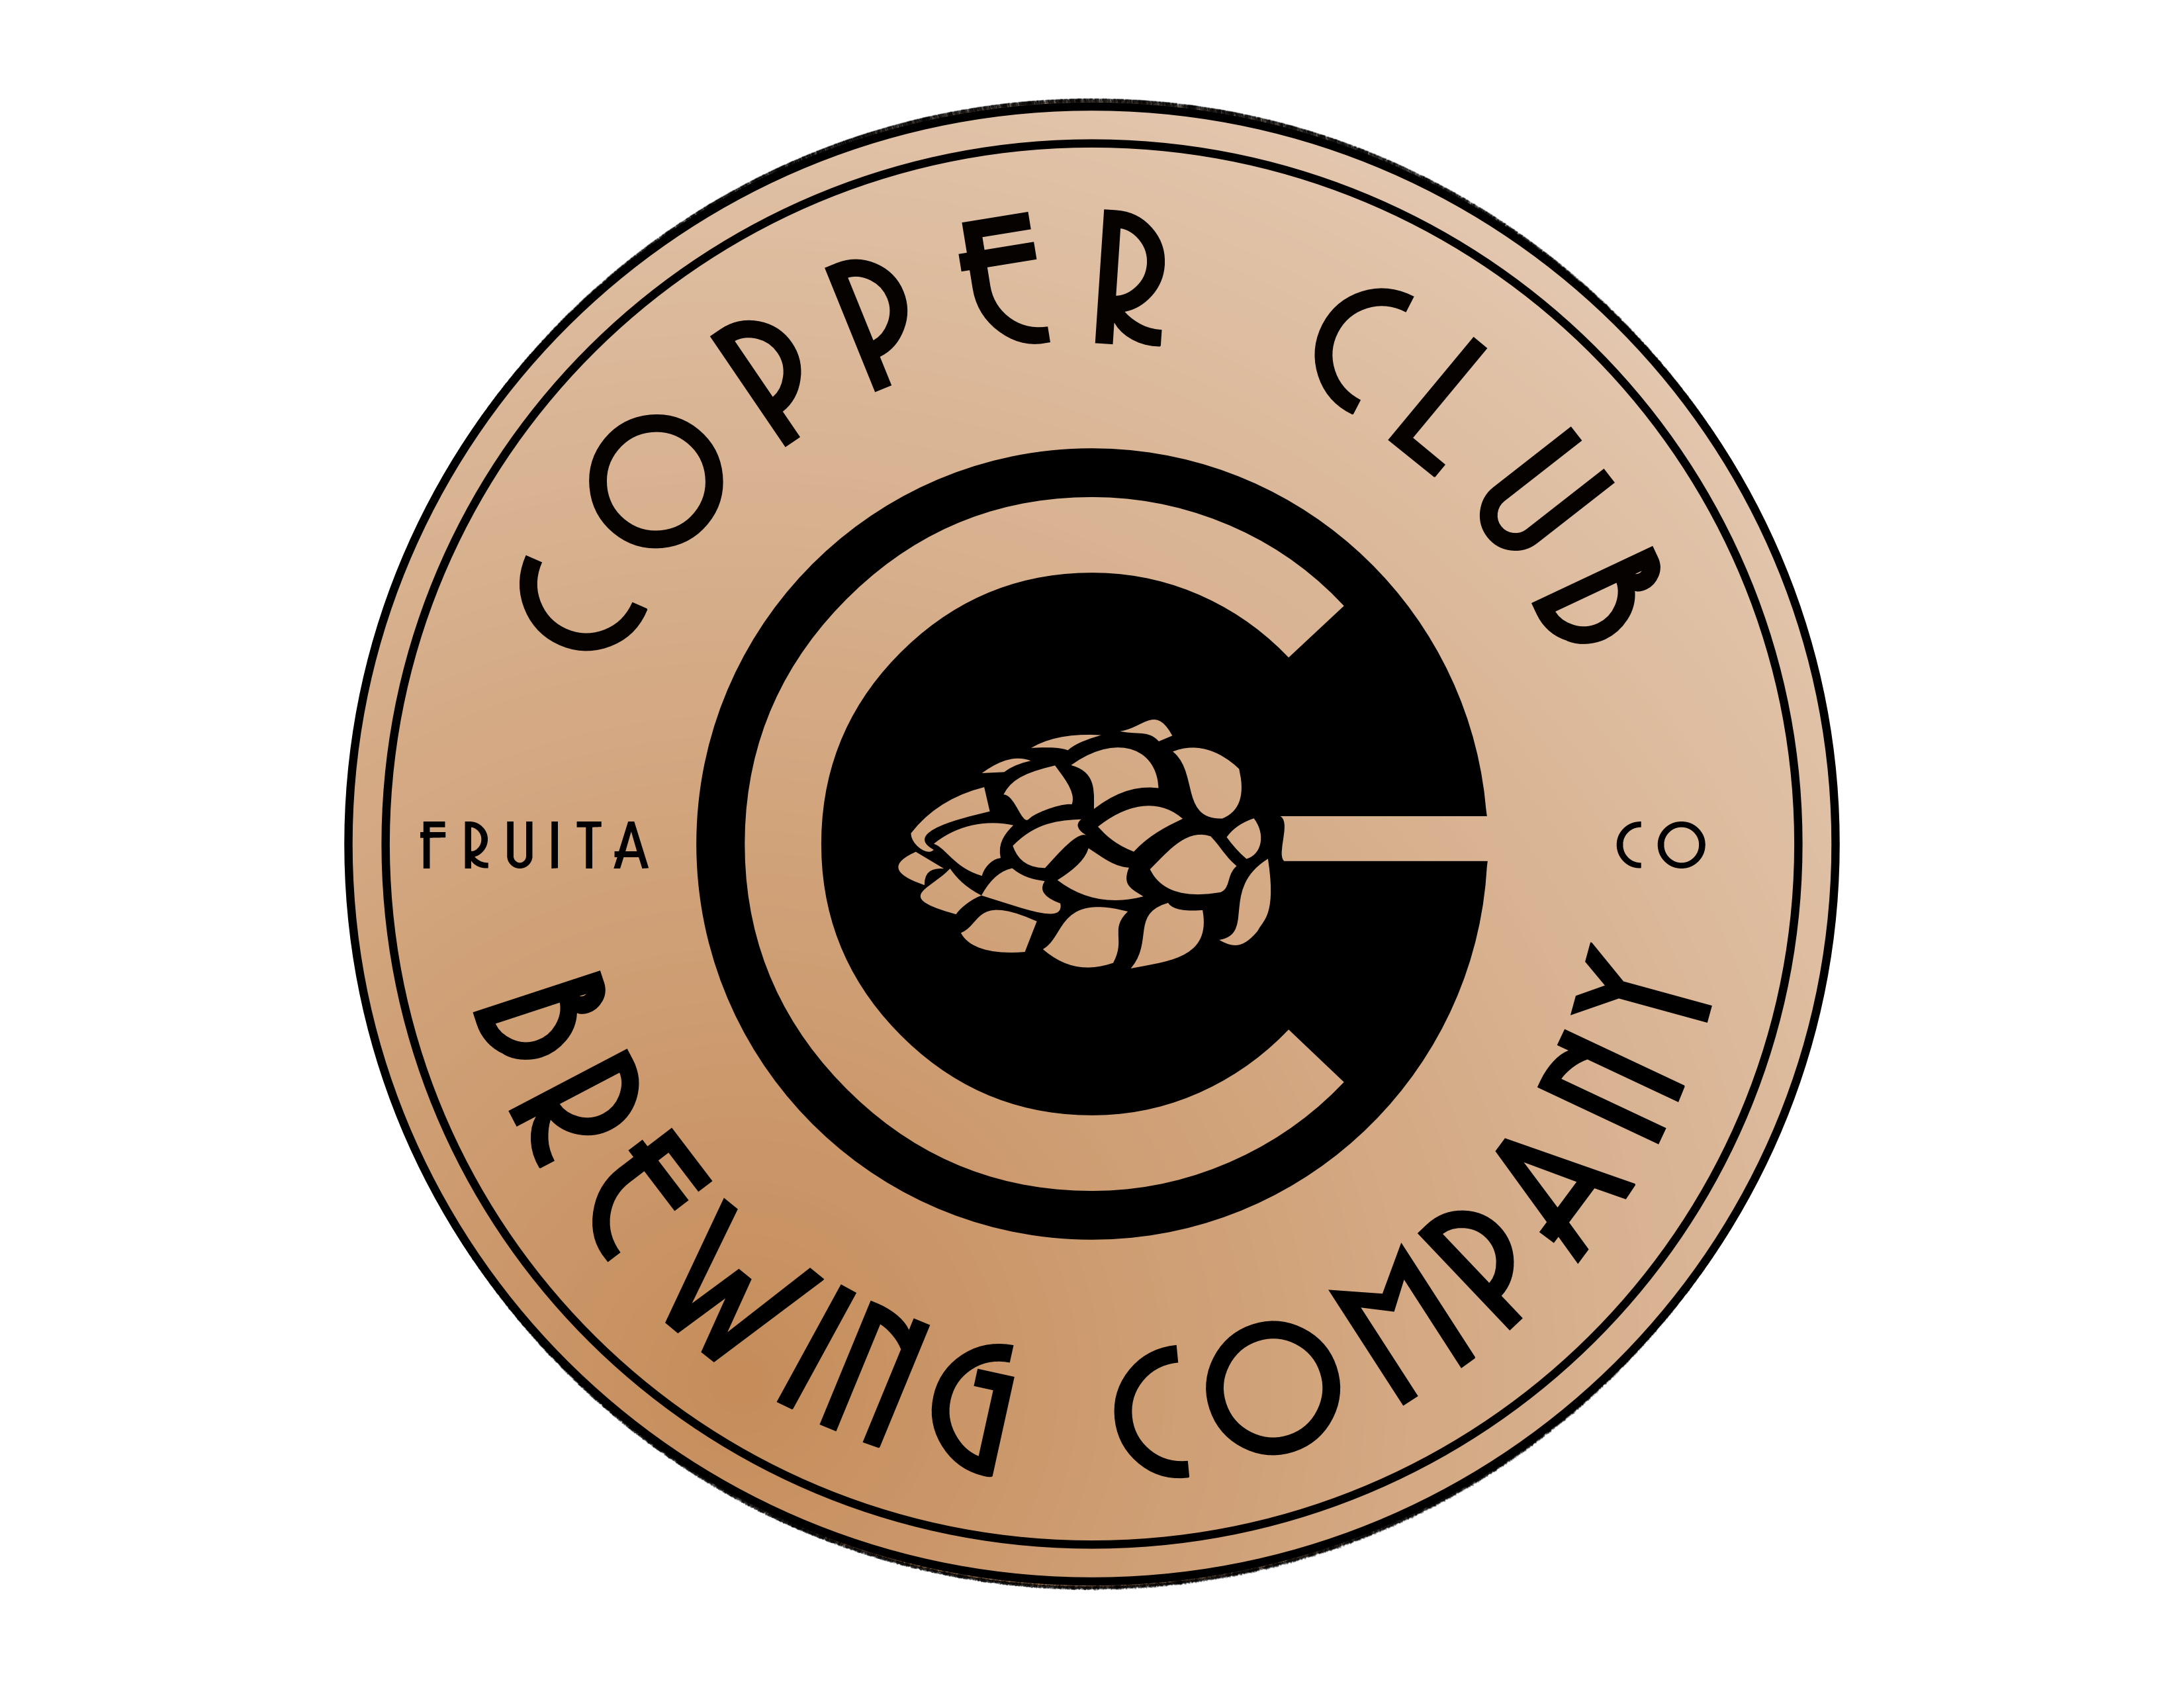 Copper Club Circ Design Color